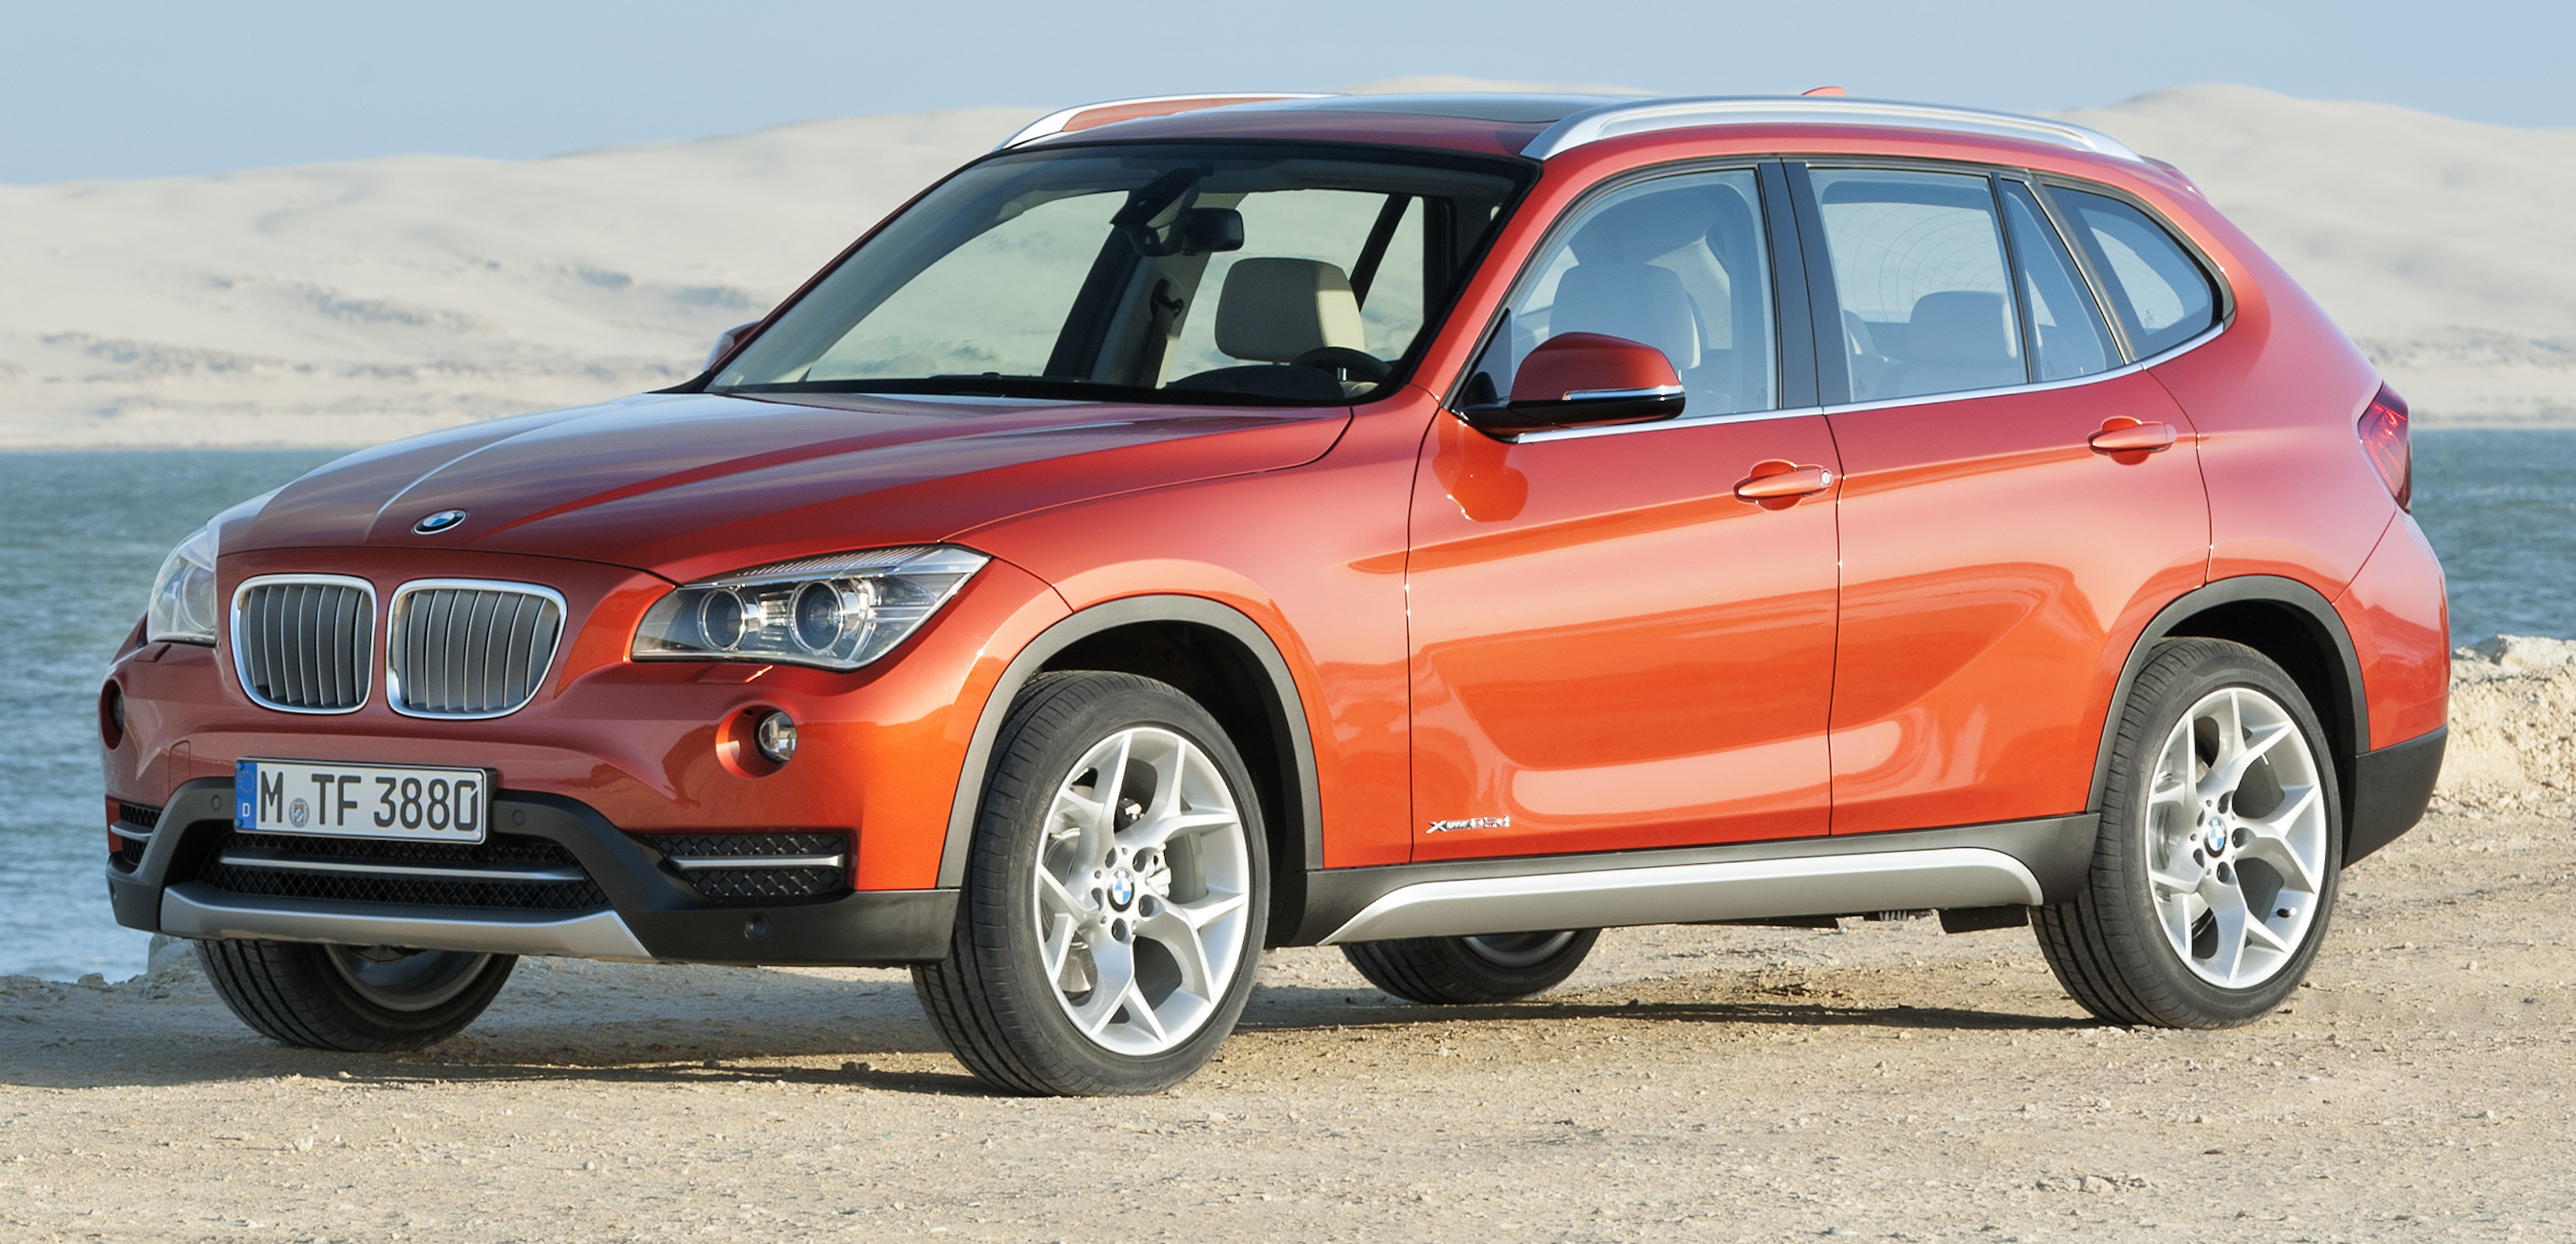 BMW X1: Putting The Sport In SUV